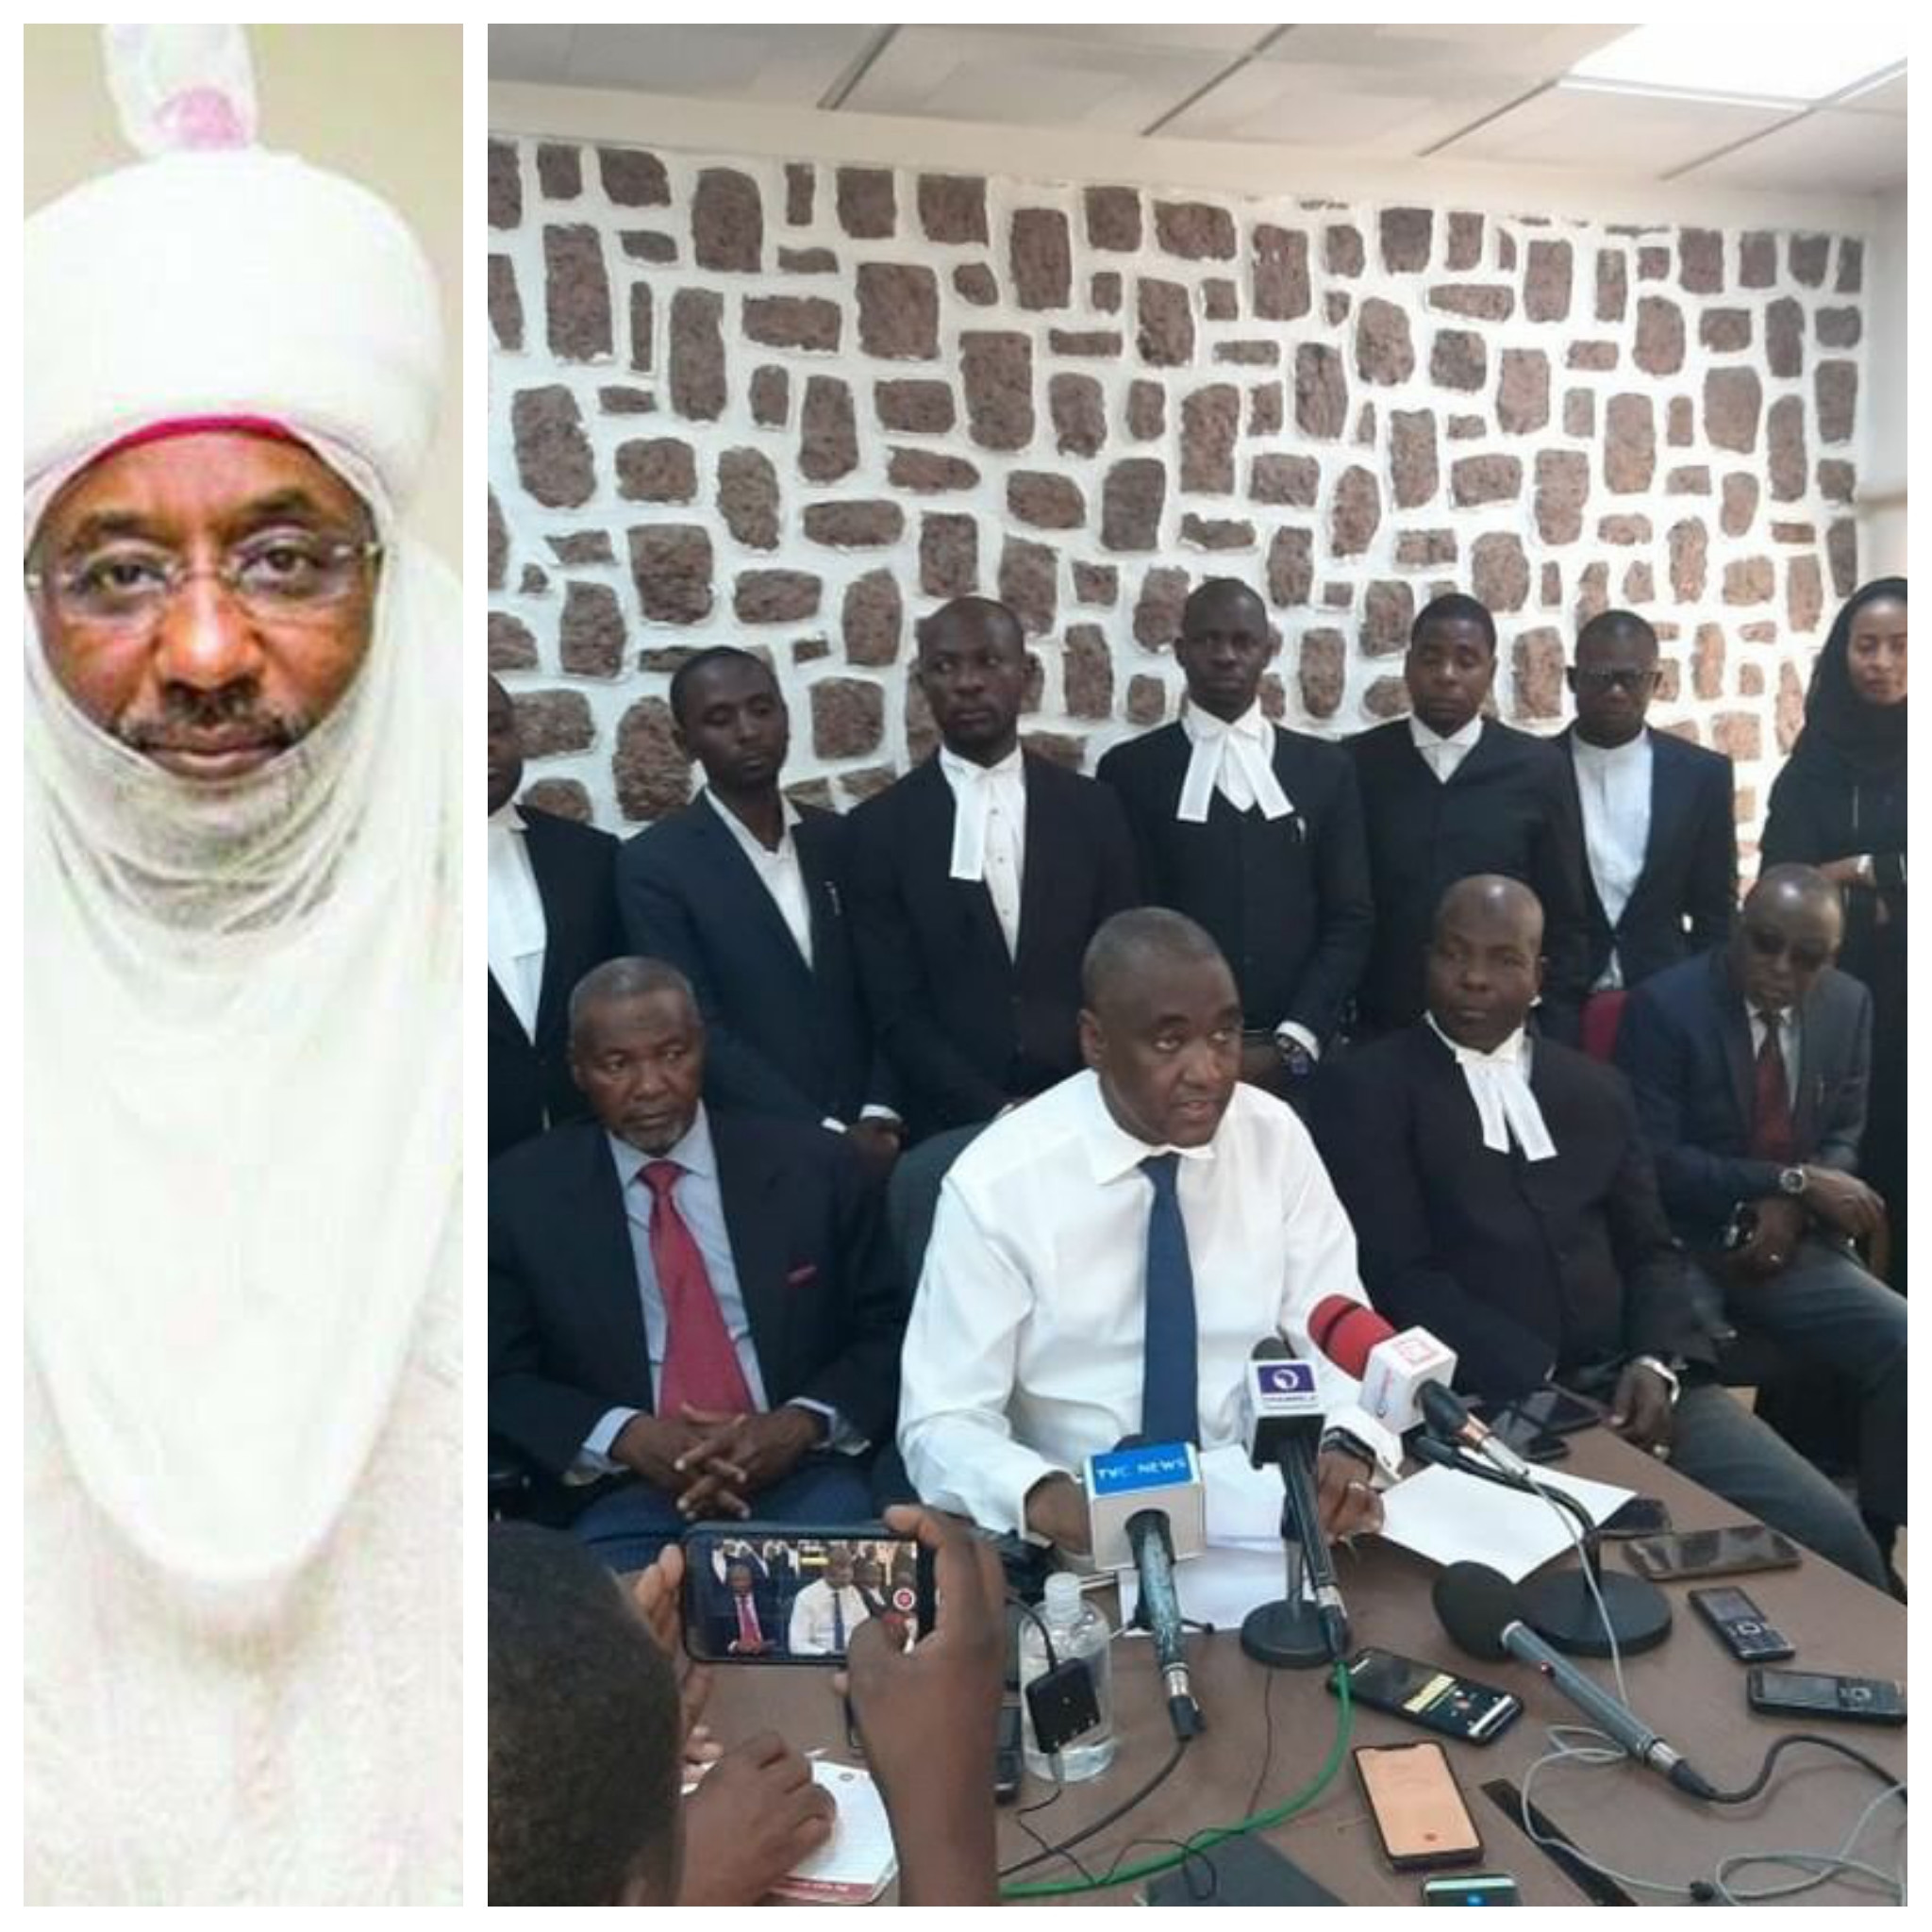 Sanusi heads to court to challenge his banishment